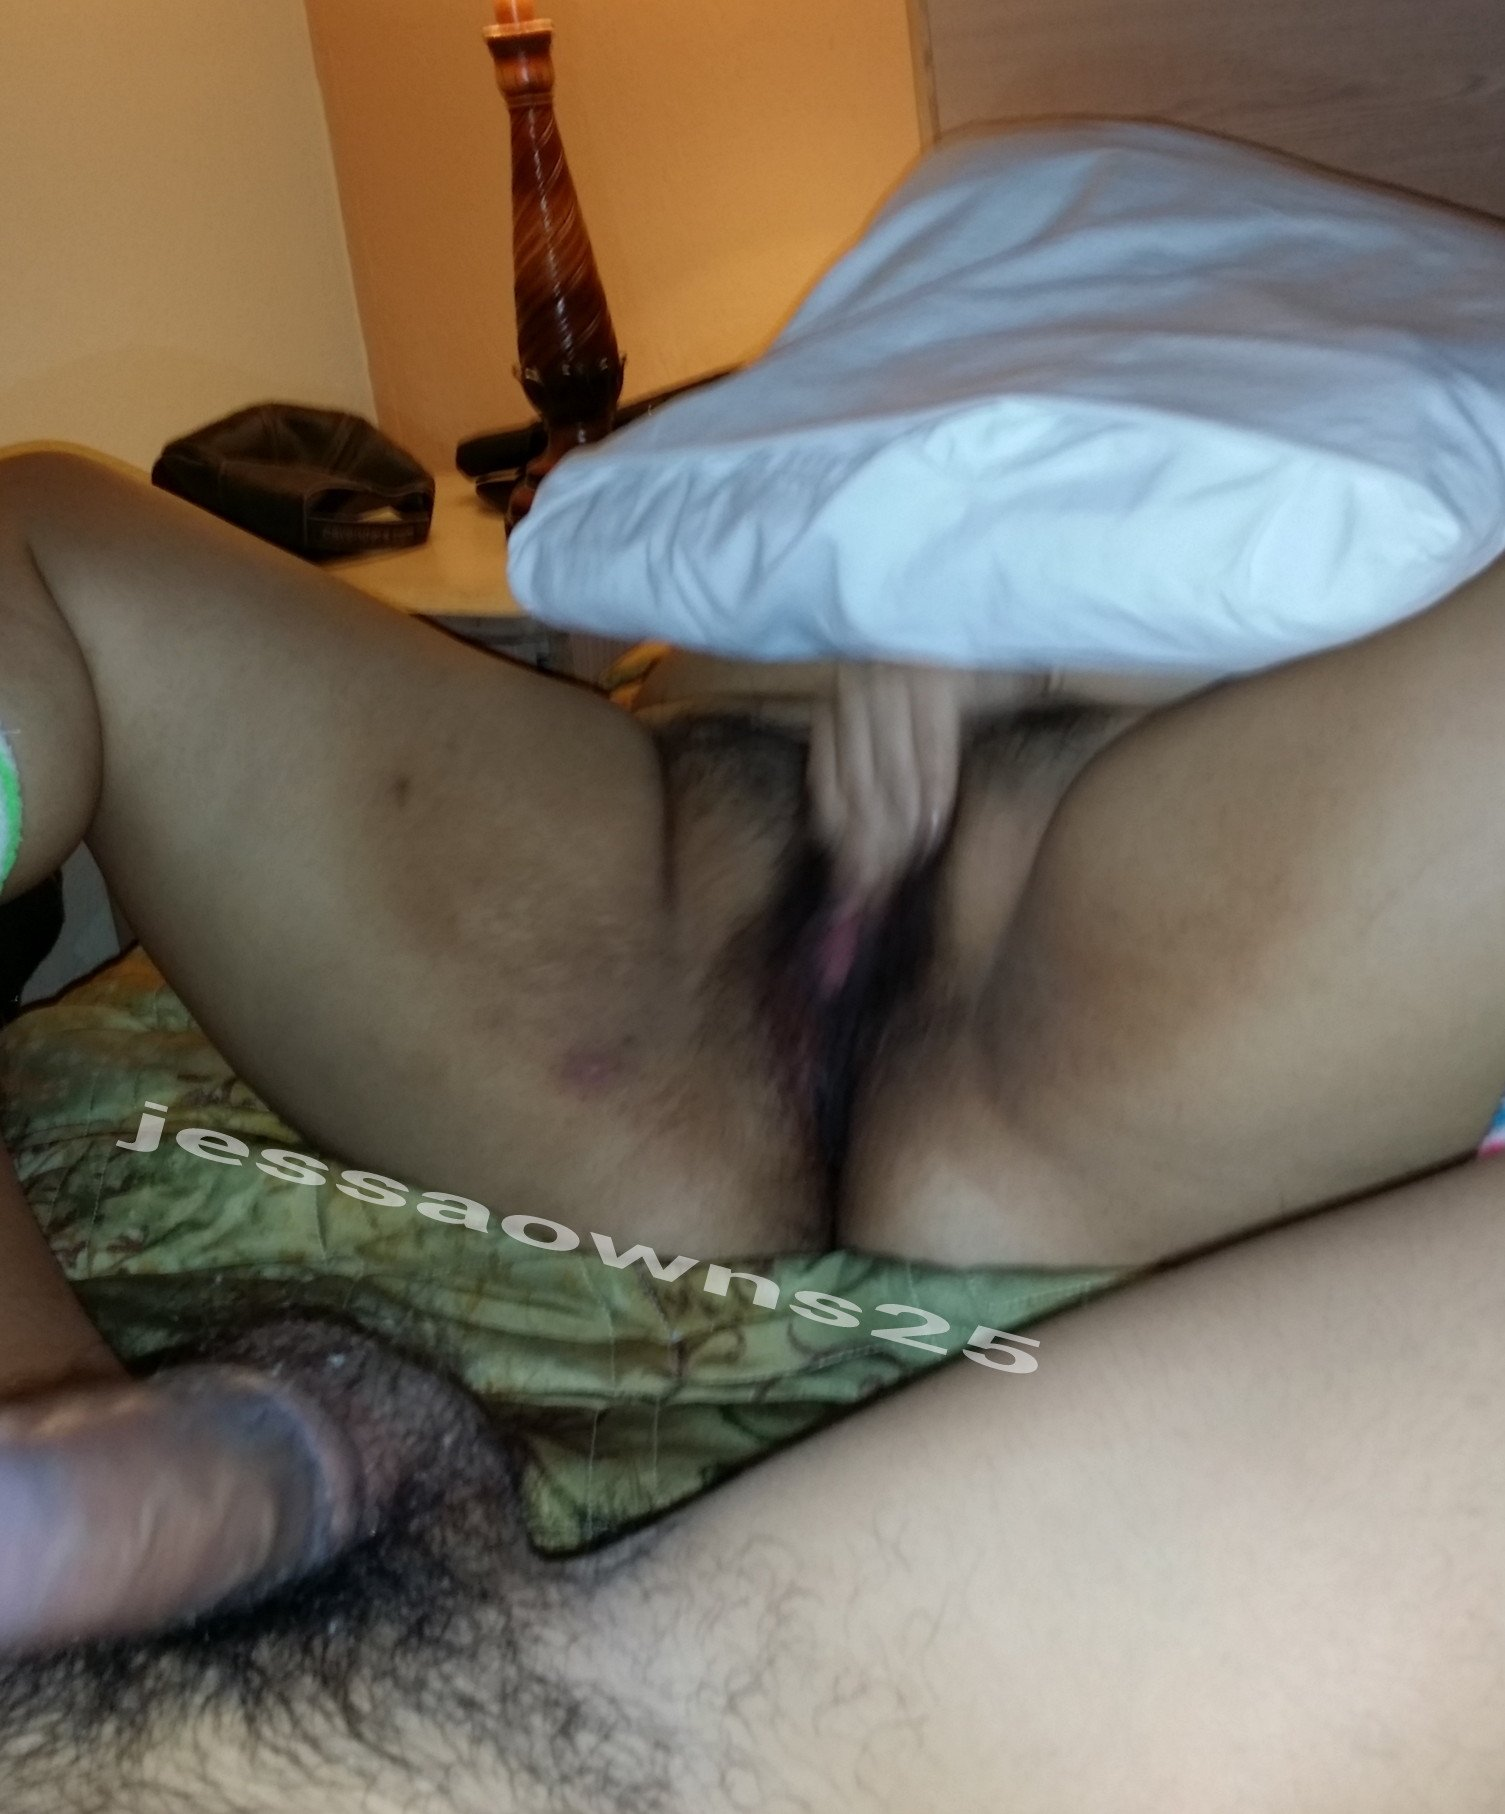 wife surprised with bbc old african women porn